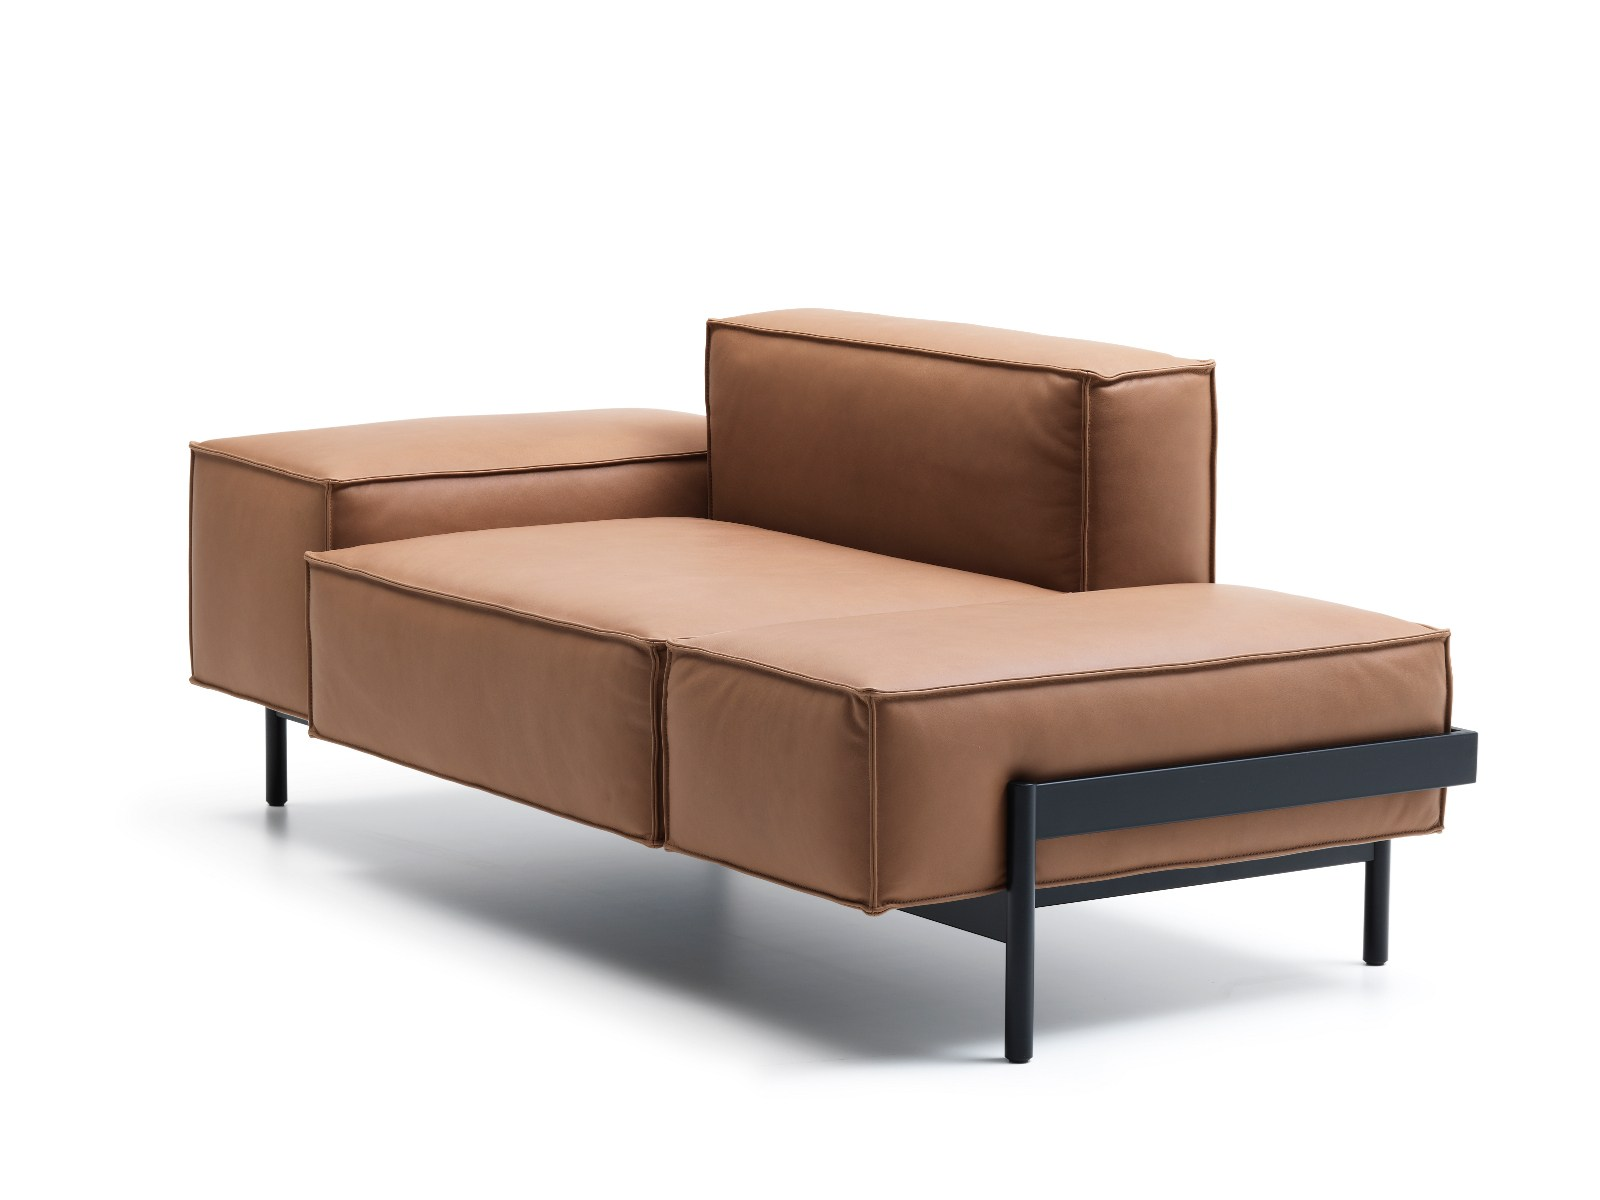 ds 21 leather sofa ds 21 collection by de sede design. Black Bedroom Furniture Sets. Home Design Ideas